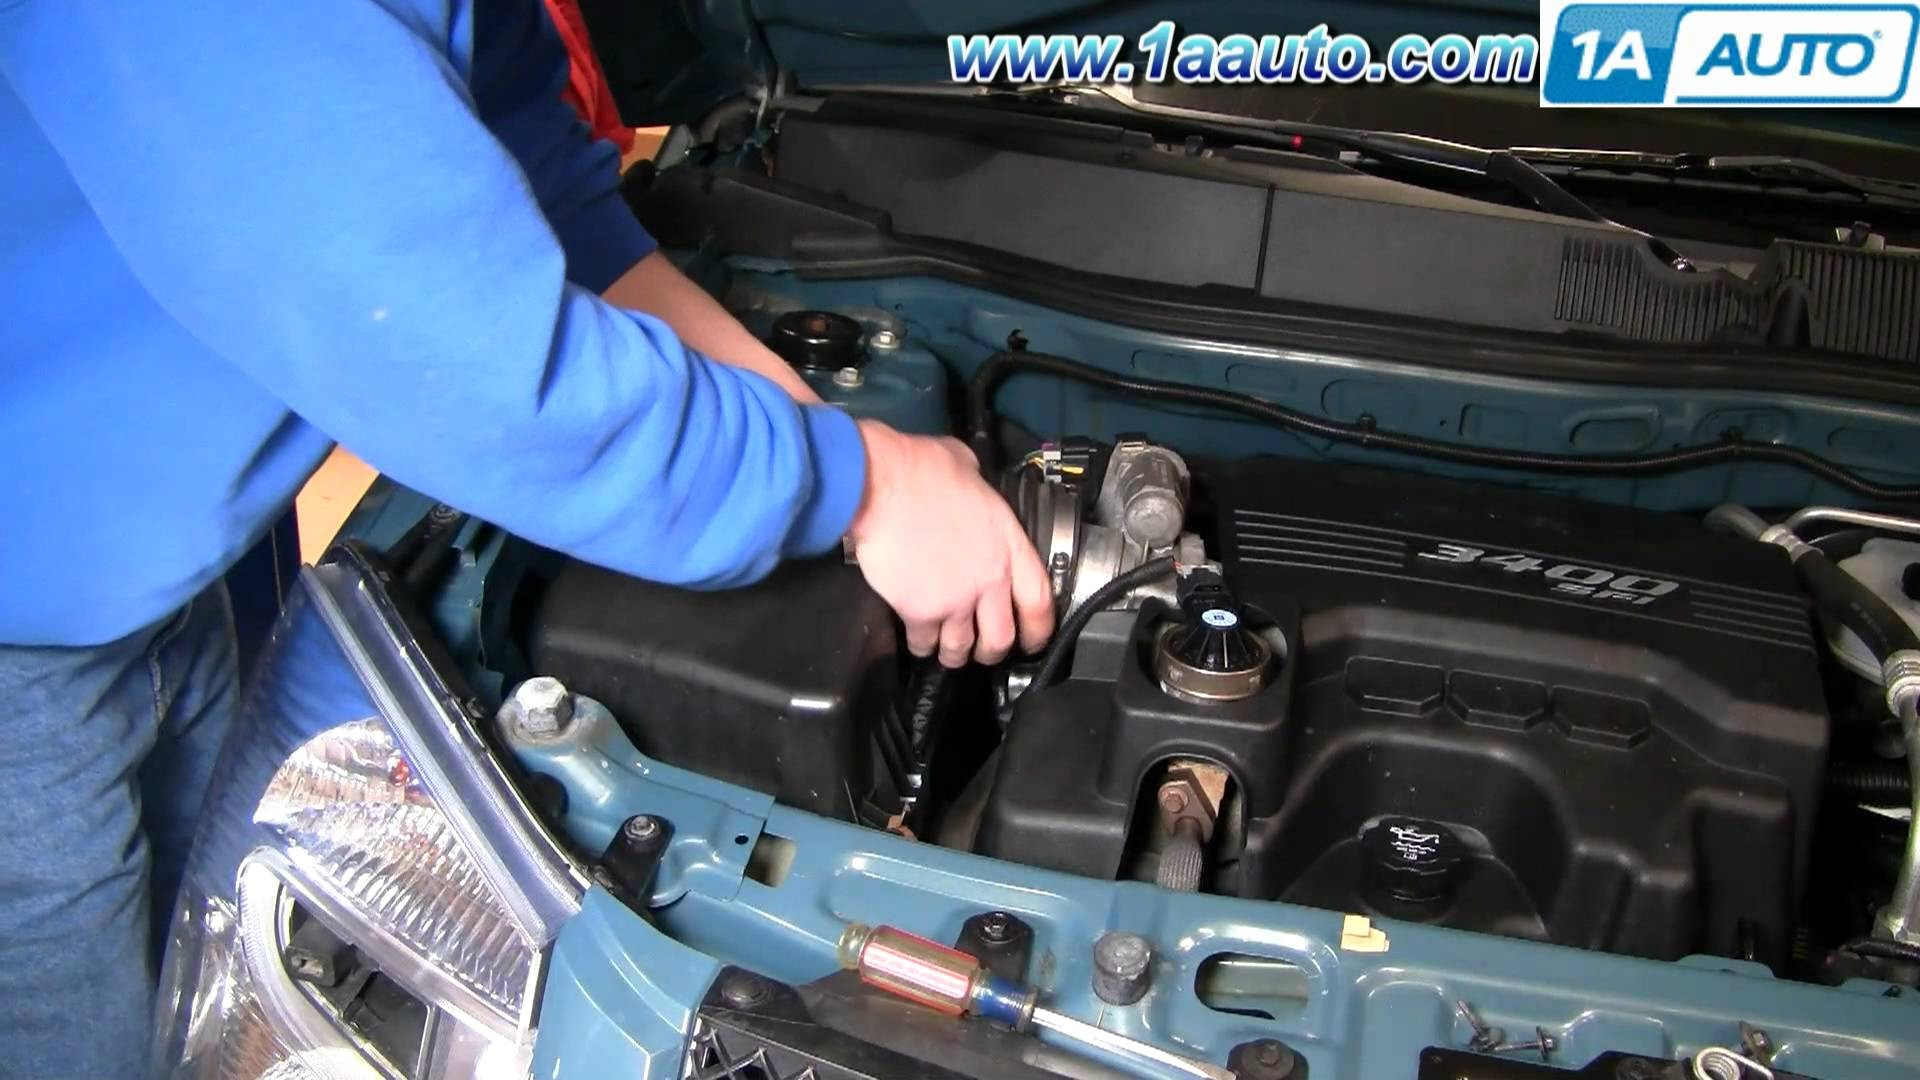 2007 Chevy Equinox Engine Diagram My Wiring 3 4 Liter How To Install Replace Air Filter 4l